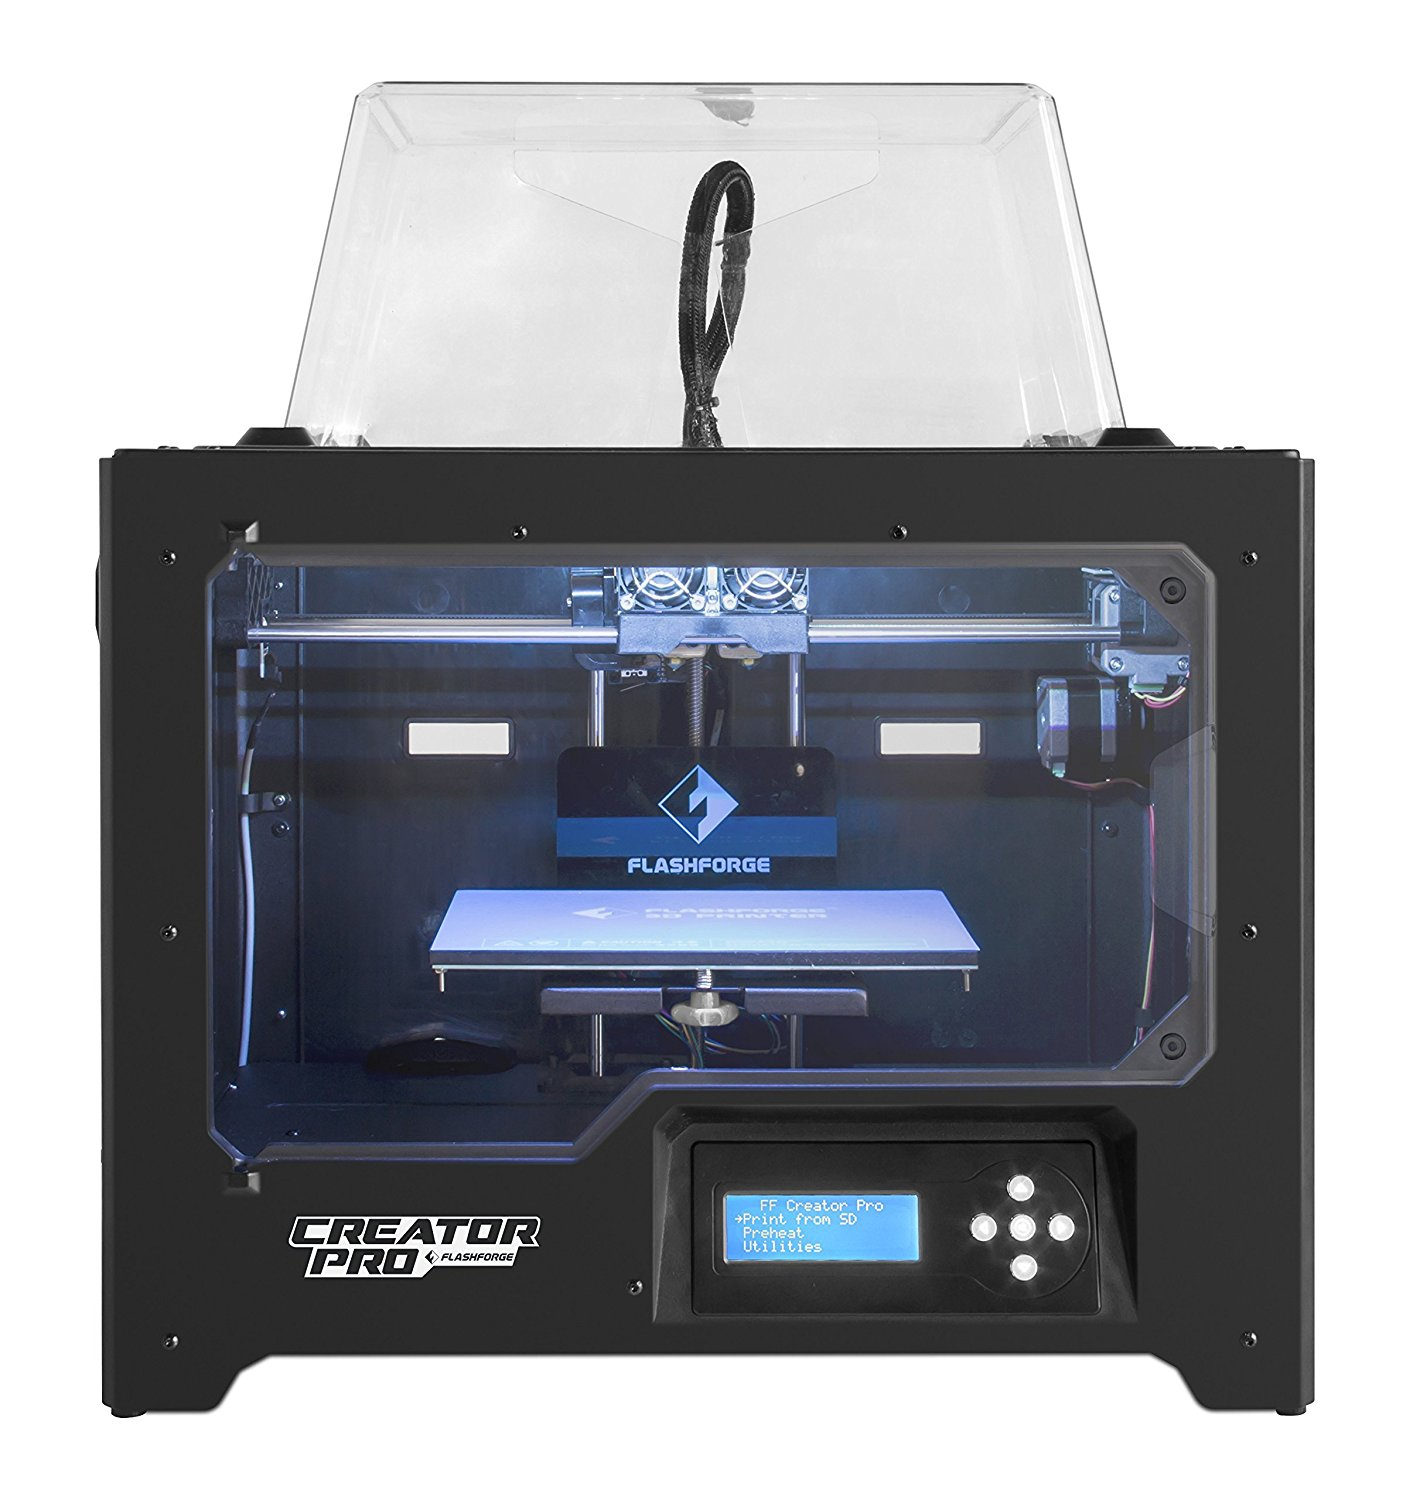 Flashforge Creator Pro black friday and cyber monday deals